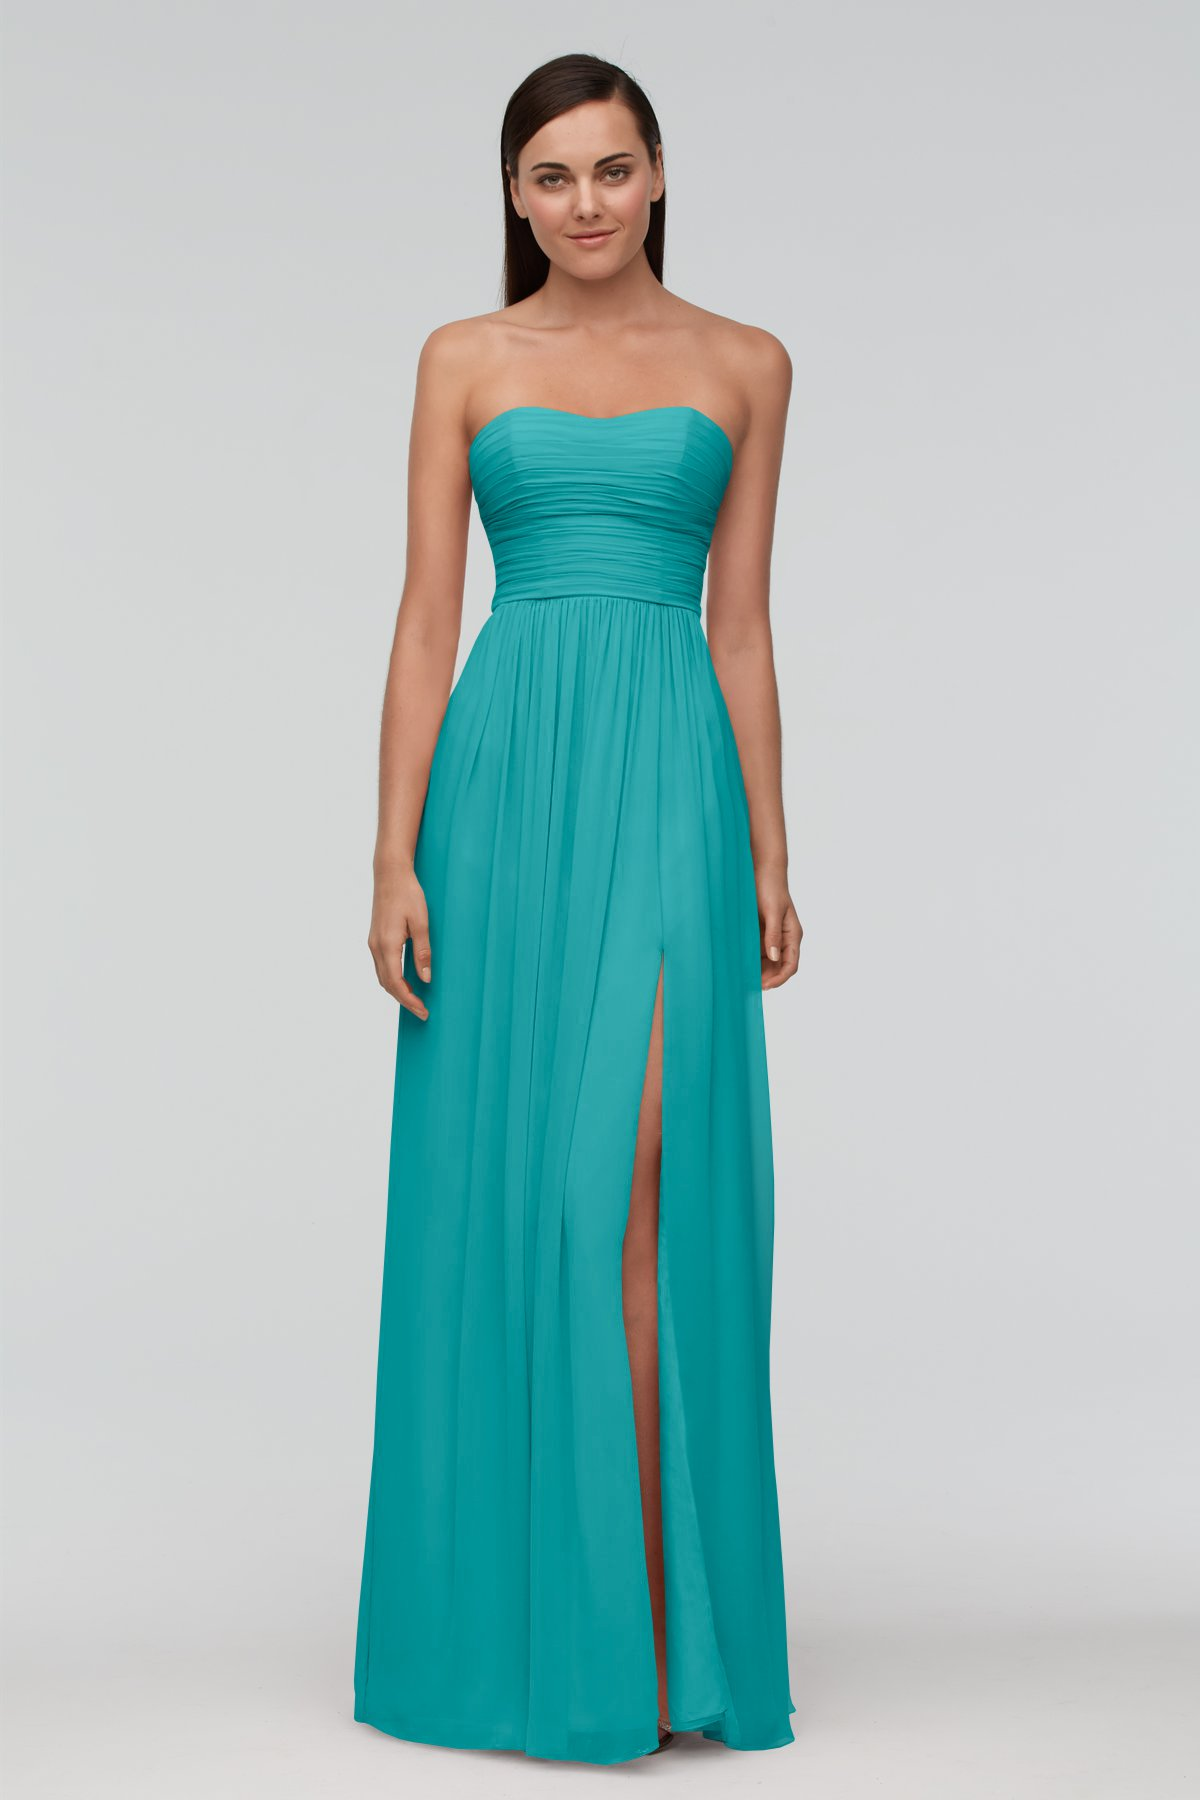 Strapless Sweetheart Long Bridesmaid Gowns UK